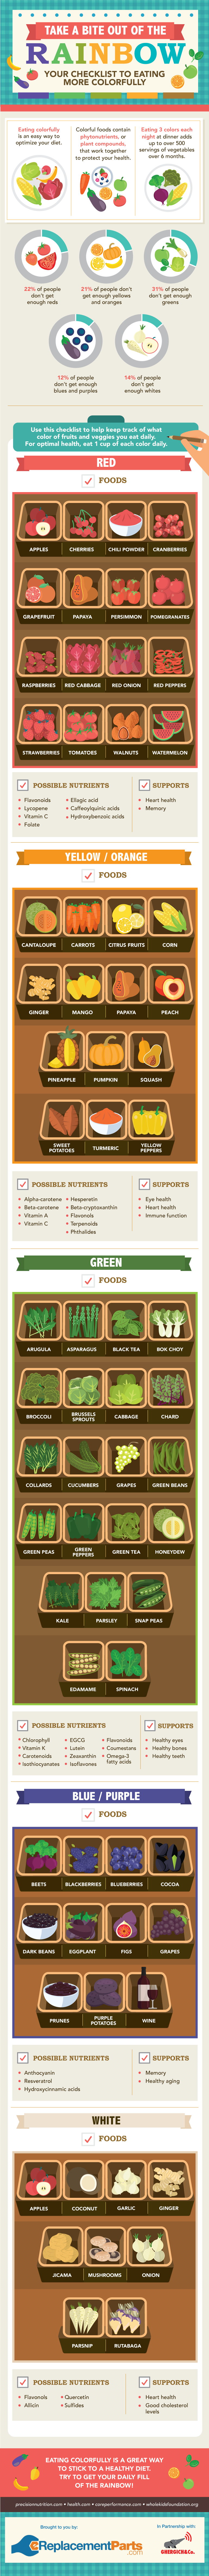 Rainbow In Your Plate: A Guide To Eating More Colorfully Infographic